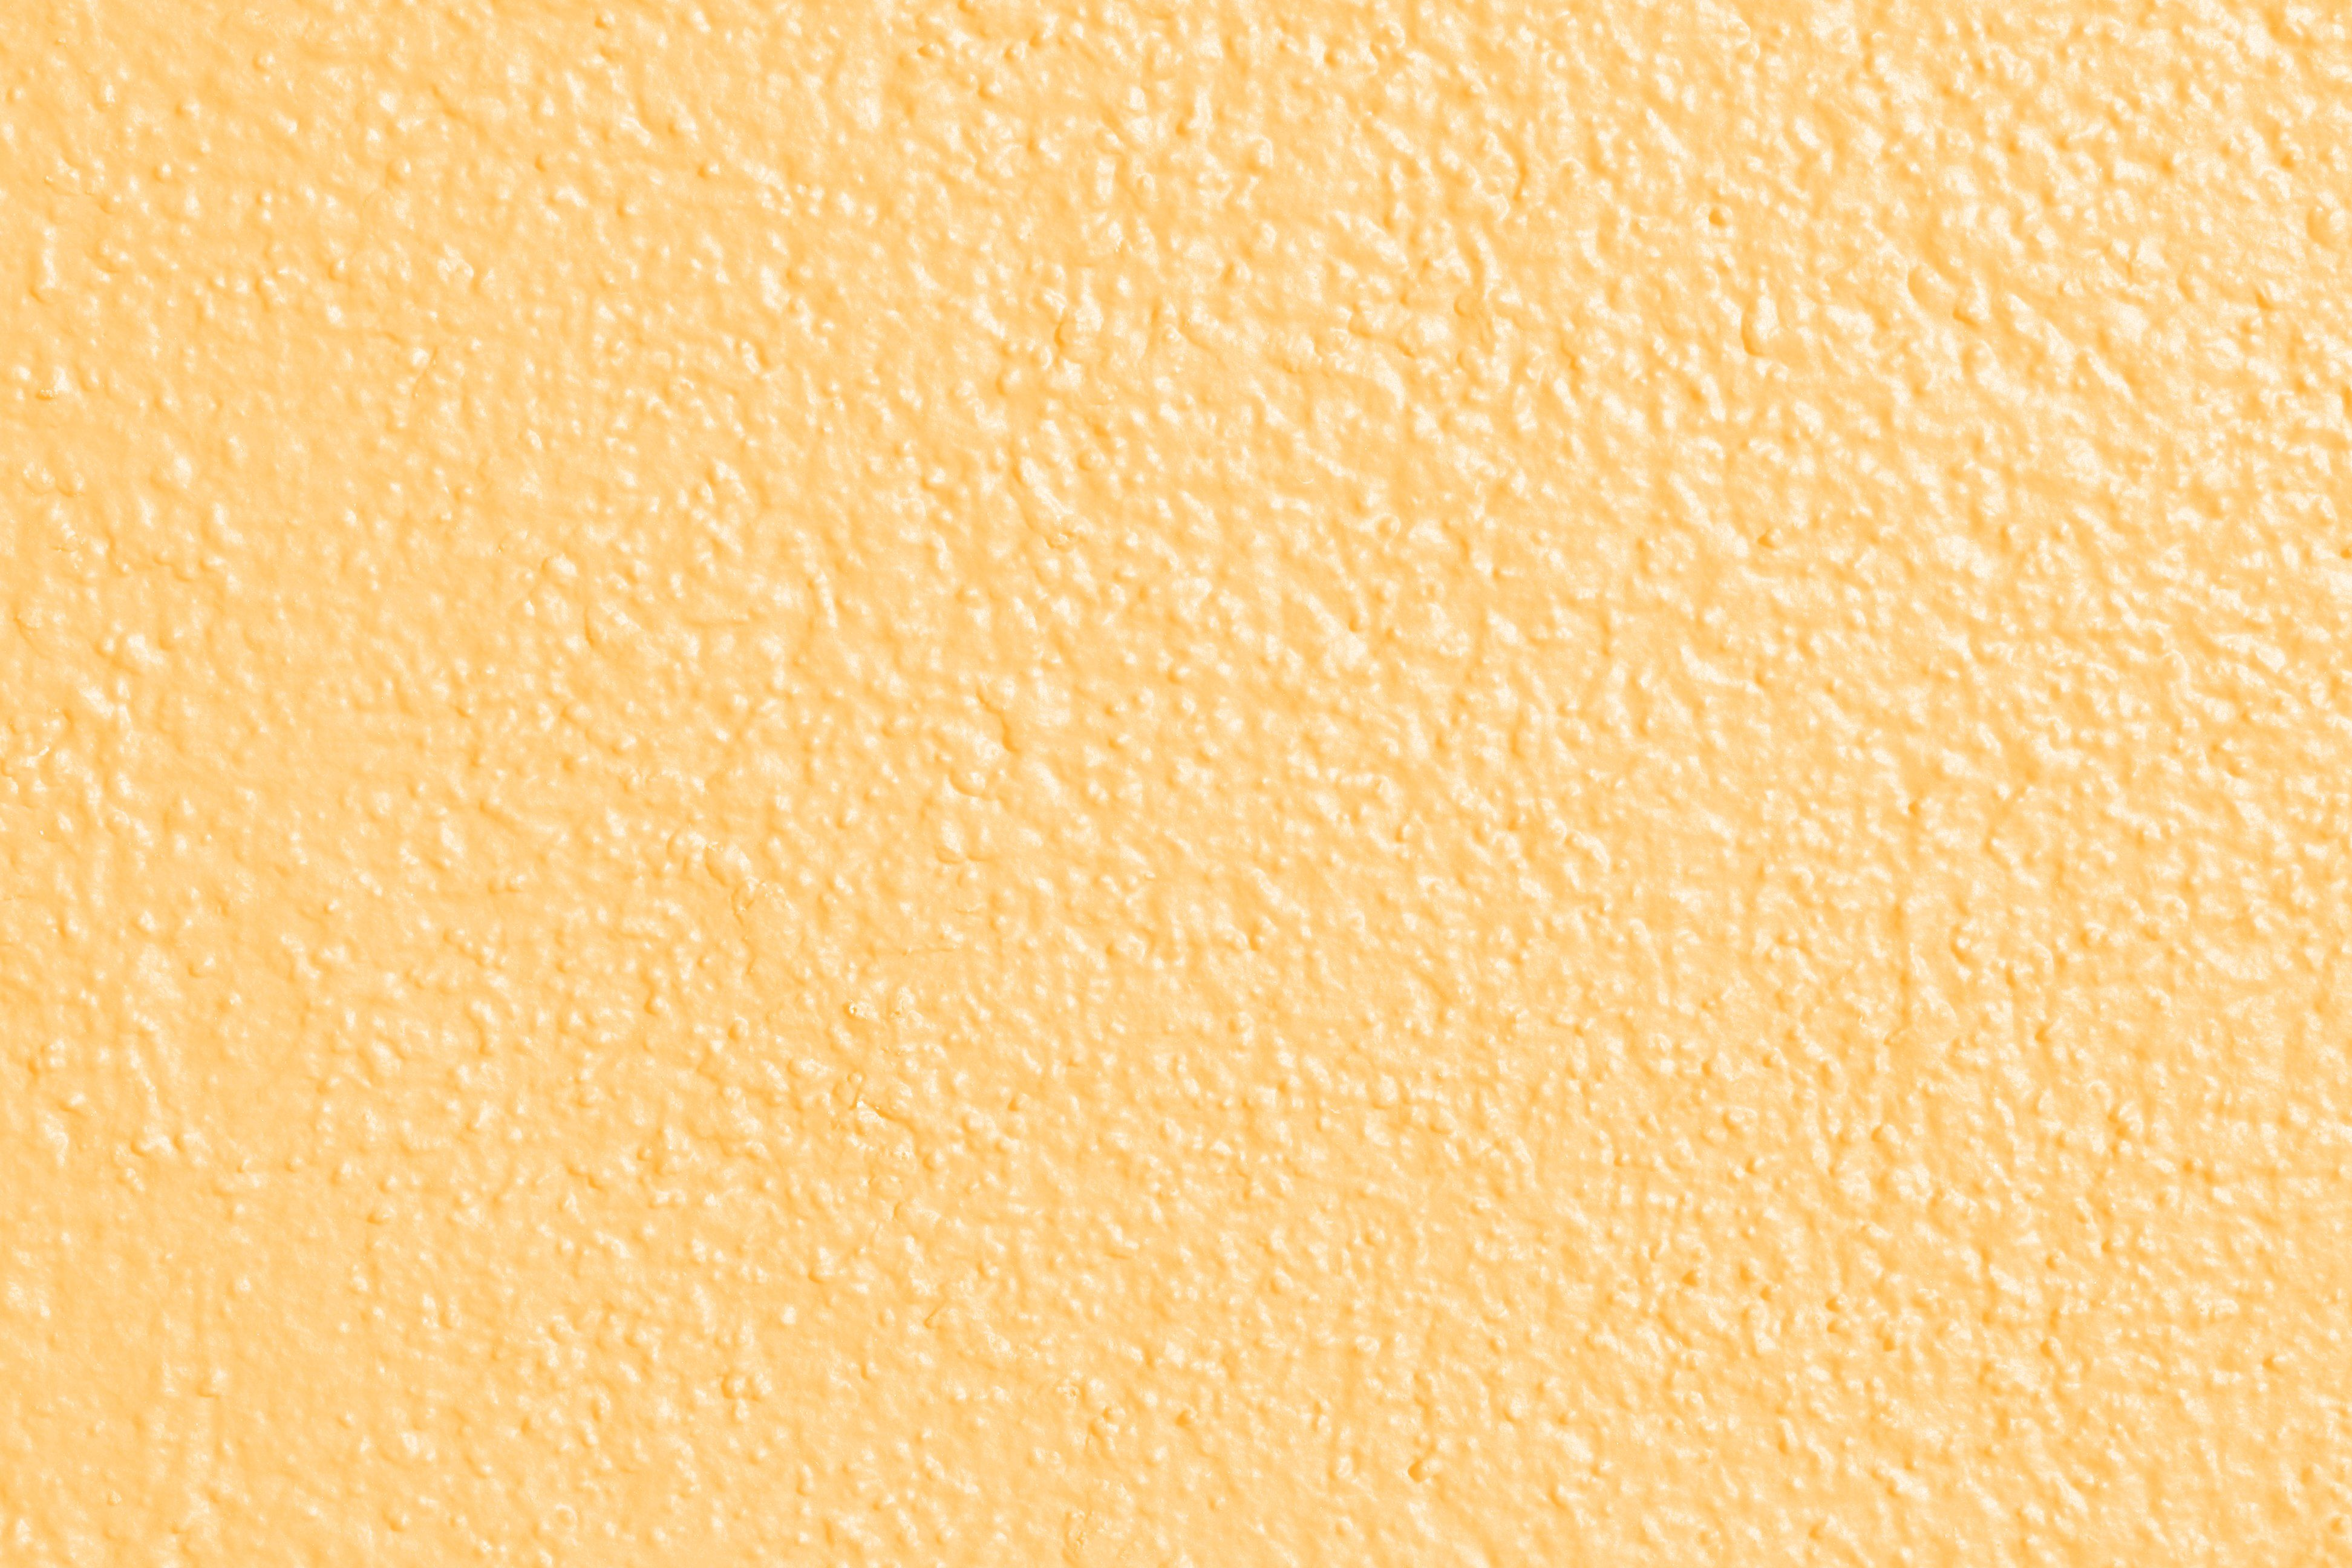 Peach Or Light Orange Colored Painted Wall Texture House